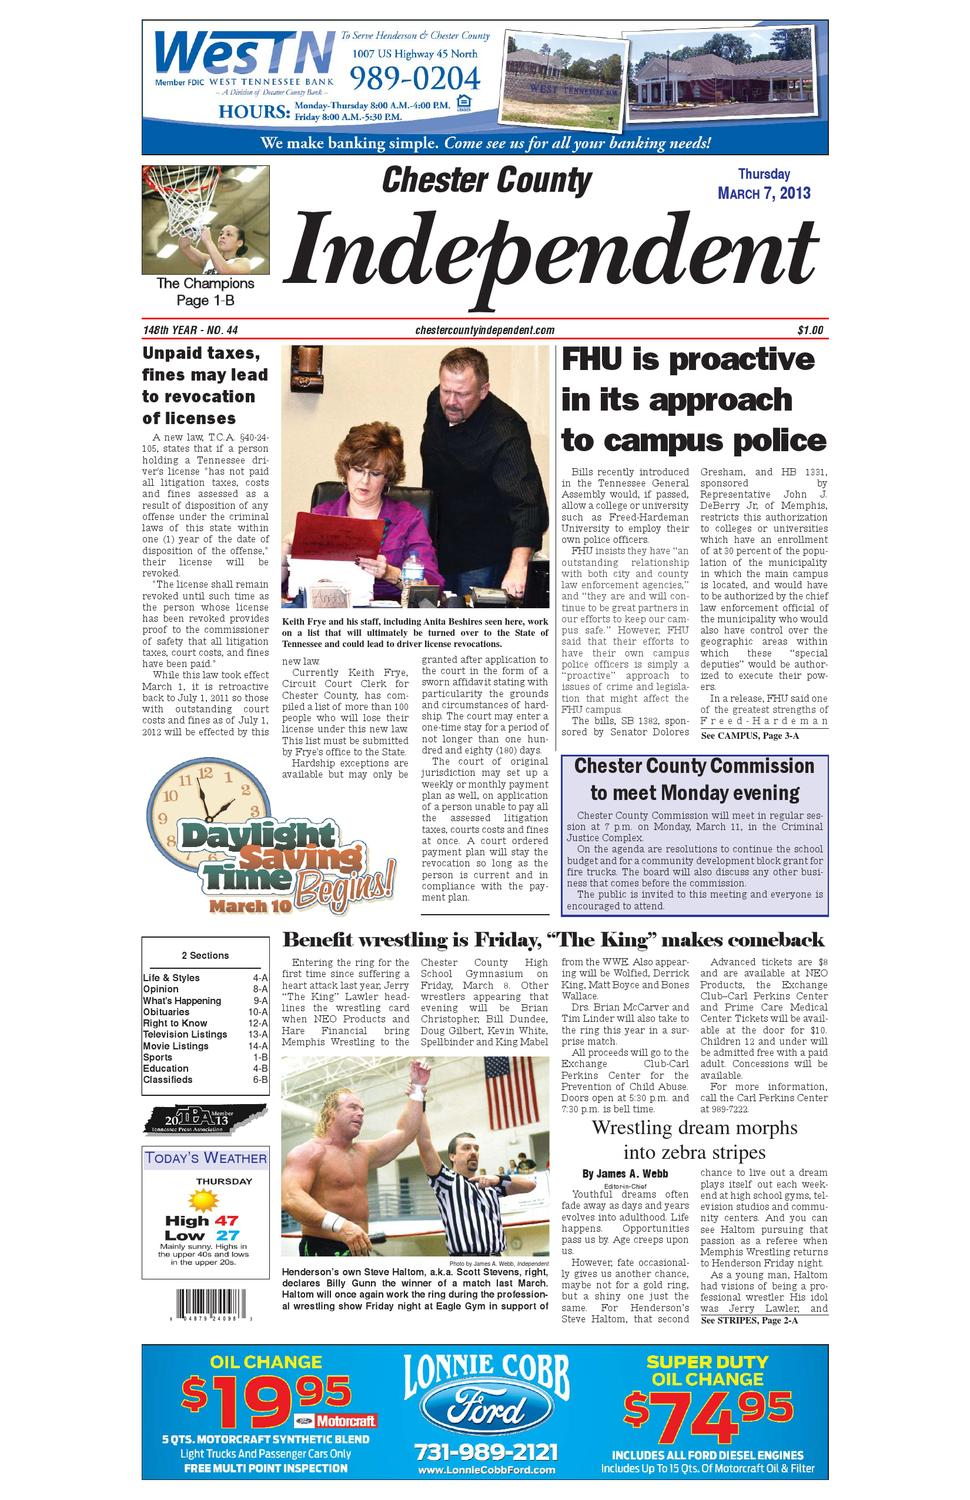 Tennessee chester county enville - Chester County Independent 03 07 13 By Chester County Independent Issuu